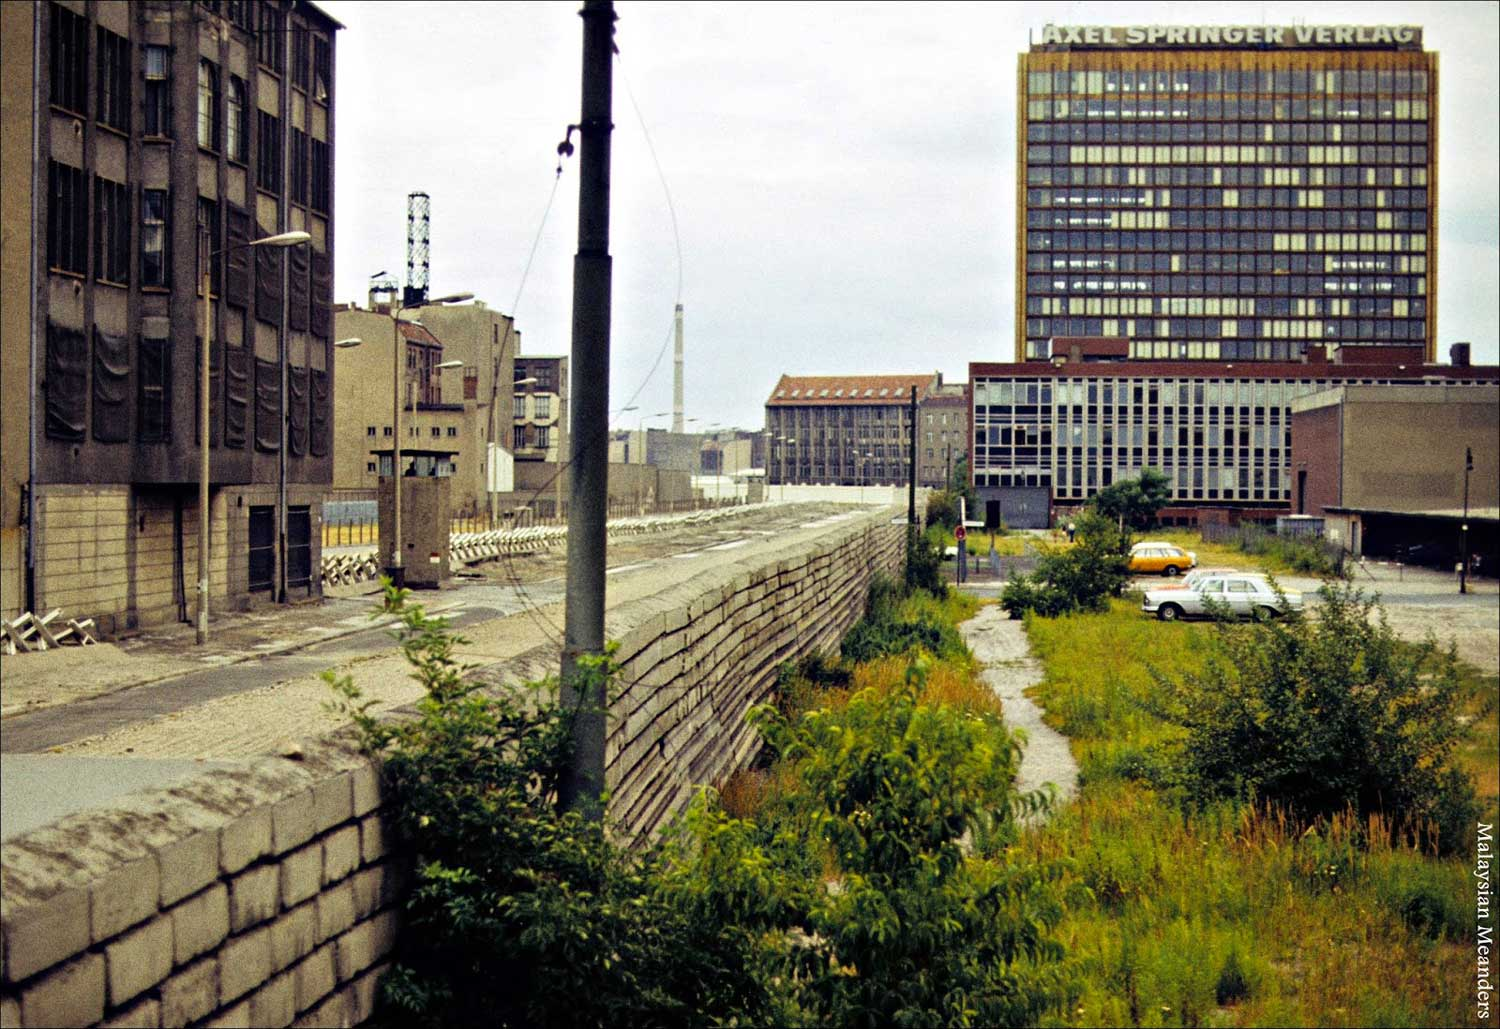 Caption by Photographer: East Berlin on the left and West Berlin on the right; in 1959-1960, Springer moved its headquarters from Hamburg to West Berlin as a symbolic protest over the division of Germany. The office building is on the right side of the above photo abutting the Berlin Wall separating it from East Berlin on the left side of the photo. Note that there's another Soviet watch tower. No one is allowed to escape, and if they try, there's a wide no-man's-land where the guards have a clear shot (Image: malaysianmeanders.blogspot.com)